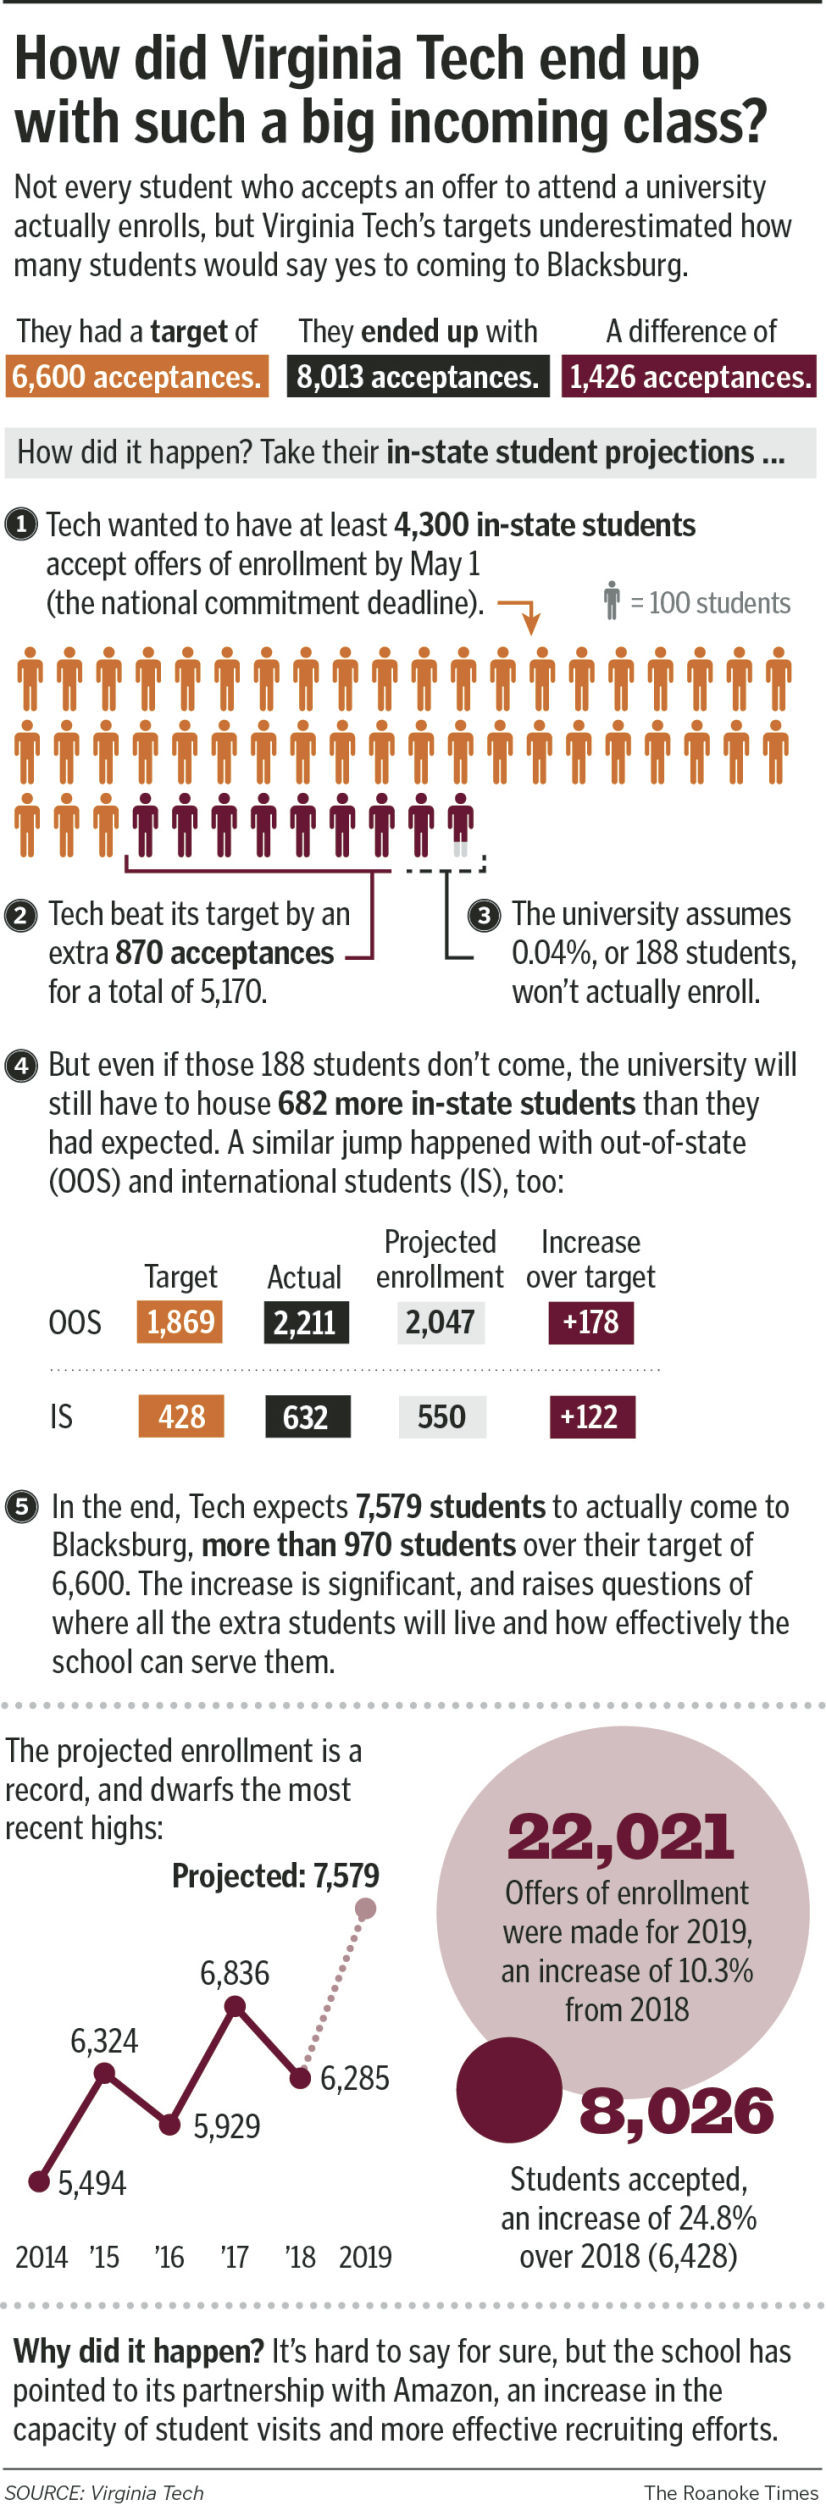 A Hokie Horde Will Stretch Blacksburg In The Fall | Education regarding Virginia Tech Academic Calendar 2019 2020